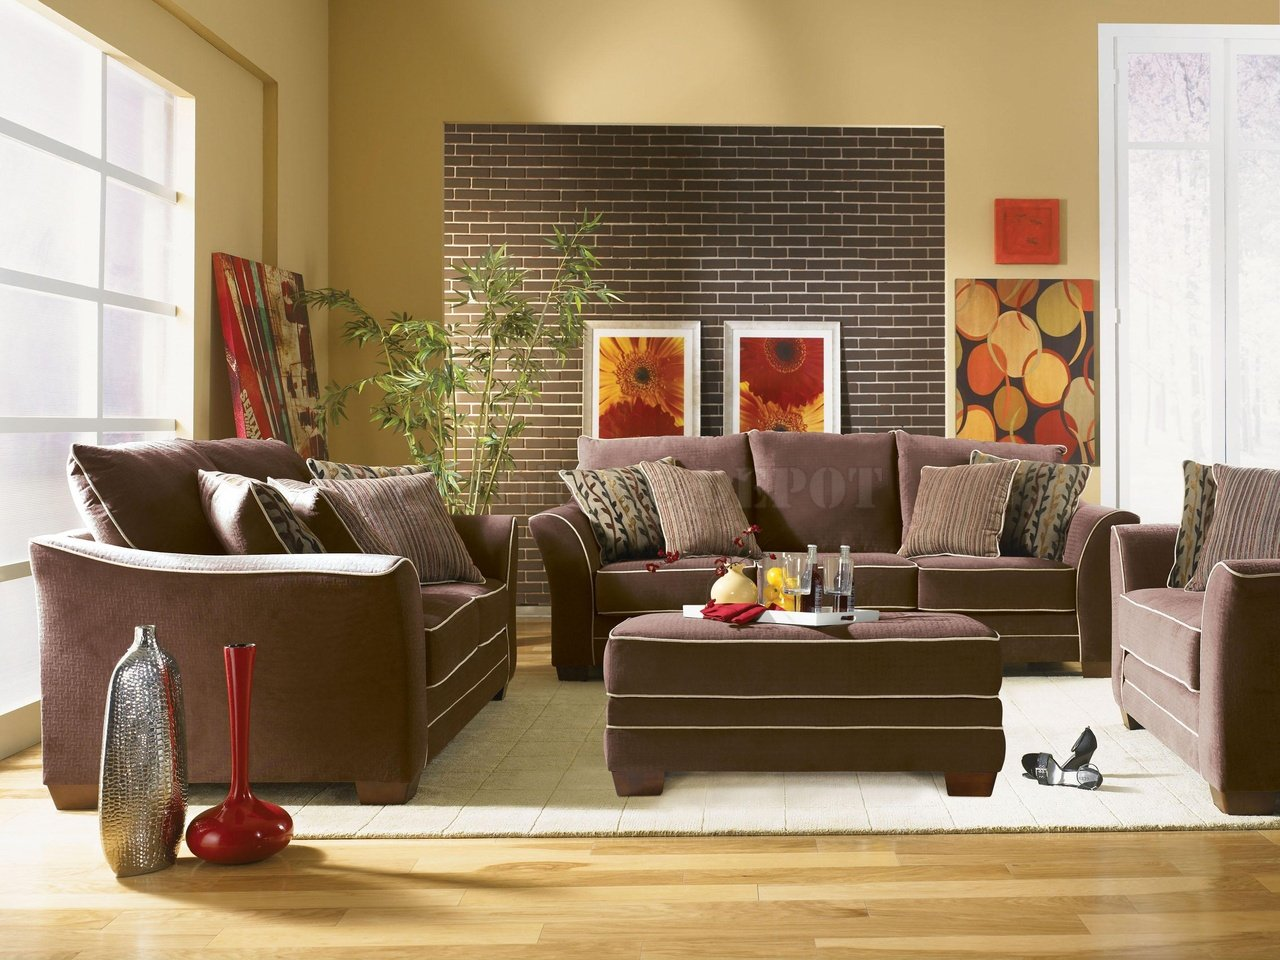 Interior design ideas interior designs home design ideas for Living room ideas with recliners